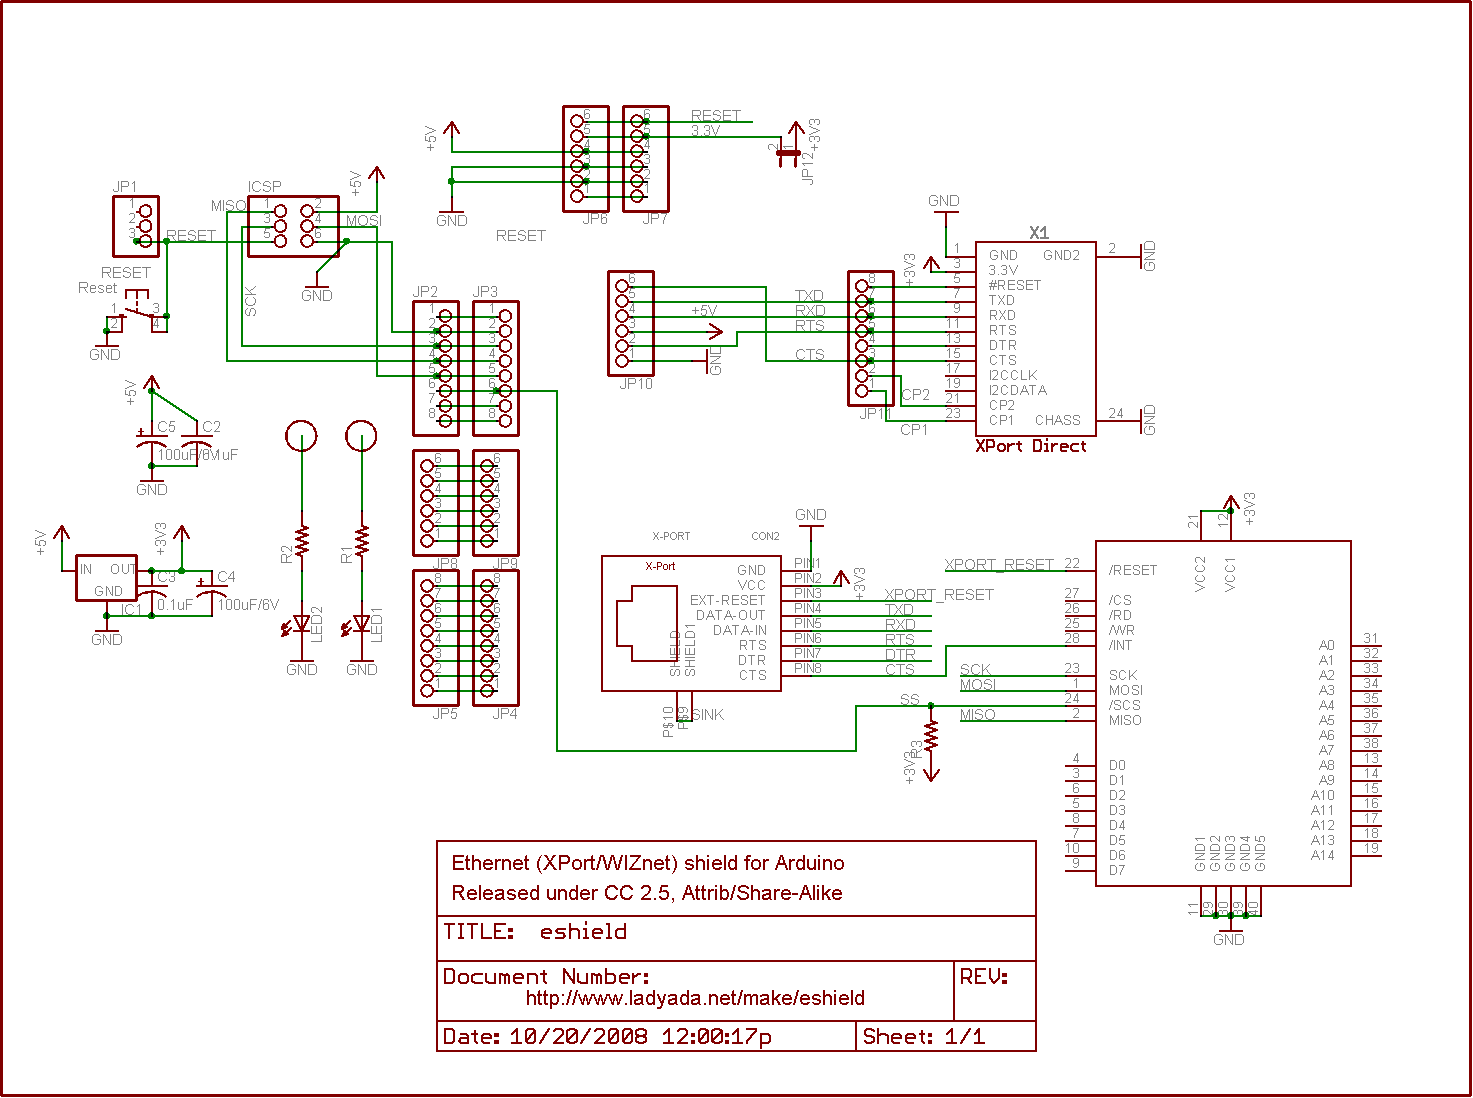 Basic Question About Ethernet Shield Light Switch Wiring Diagram 2000 R6 Http Ladyadanet Make Eshield Eshieldv12sch